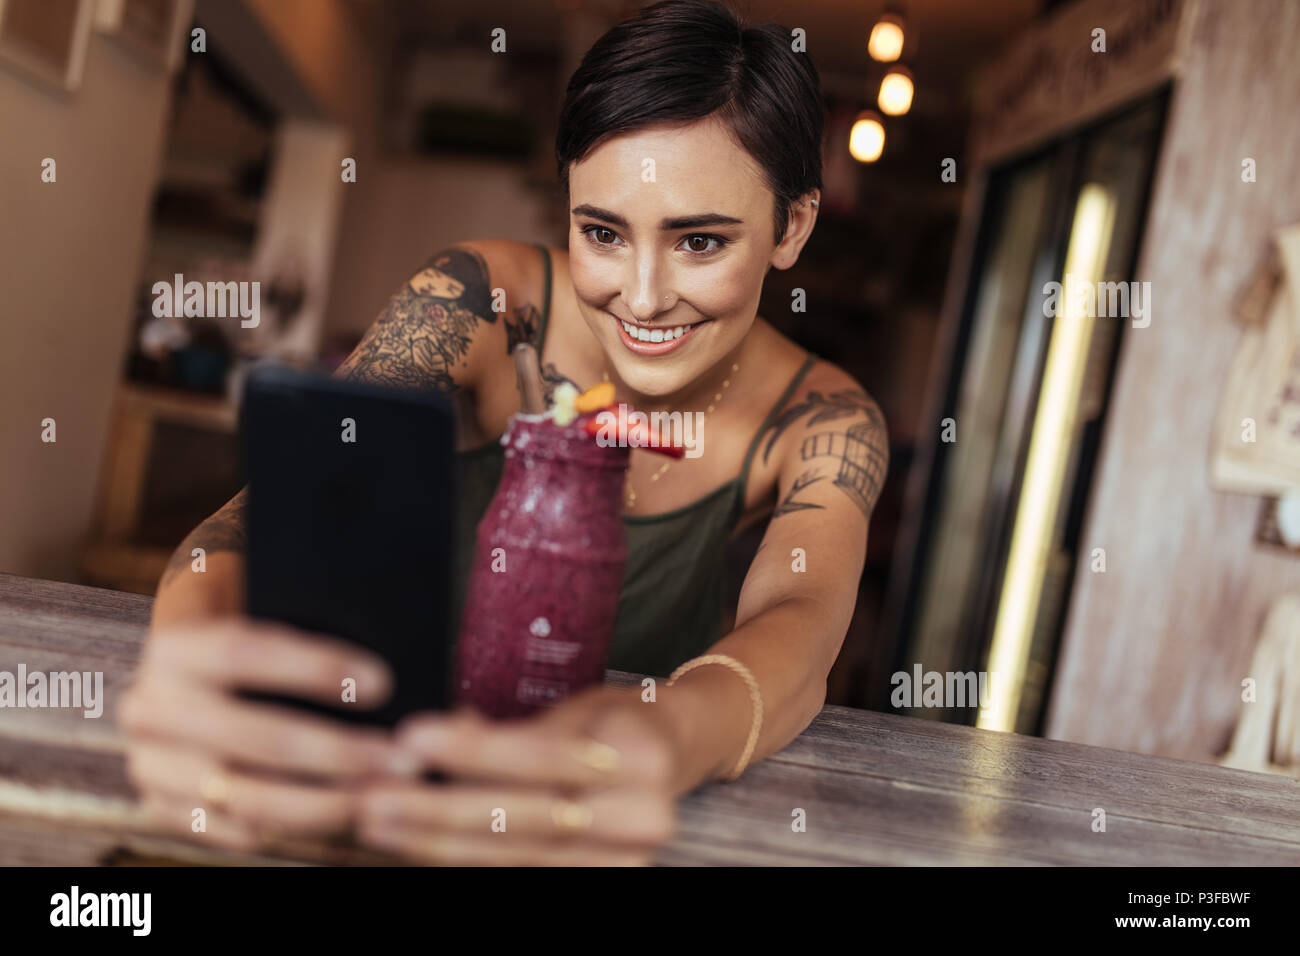 Smiling woman taking a selfie with a smoothie placed in front of her using a mobile phone for her food blog. Food blogger shooting photos for her blog - Stock Image